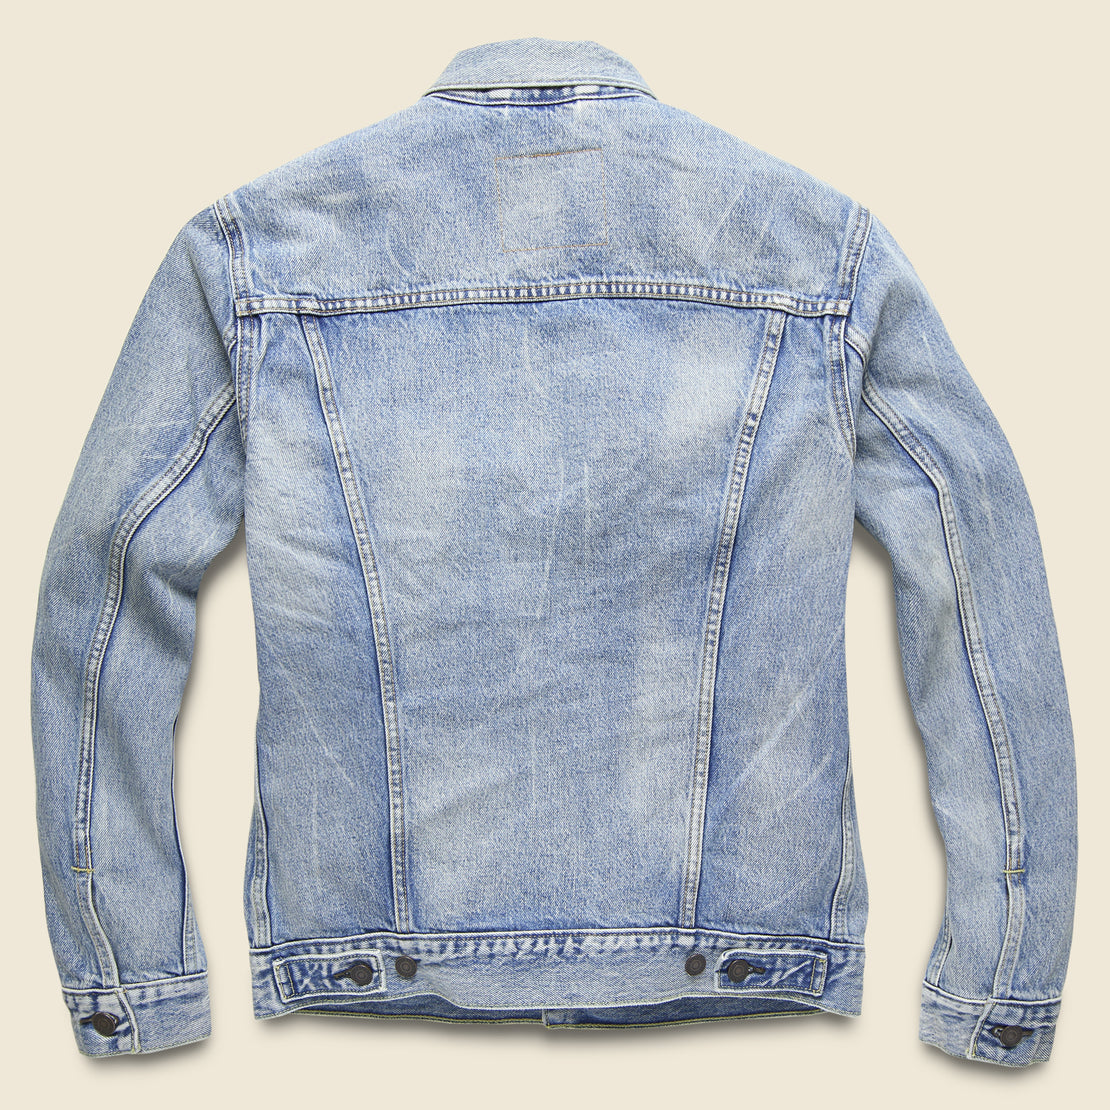 Trucker Jacket - Rolled Up Dollar